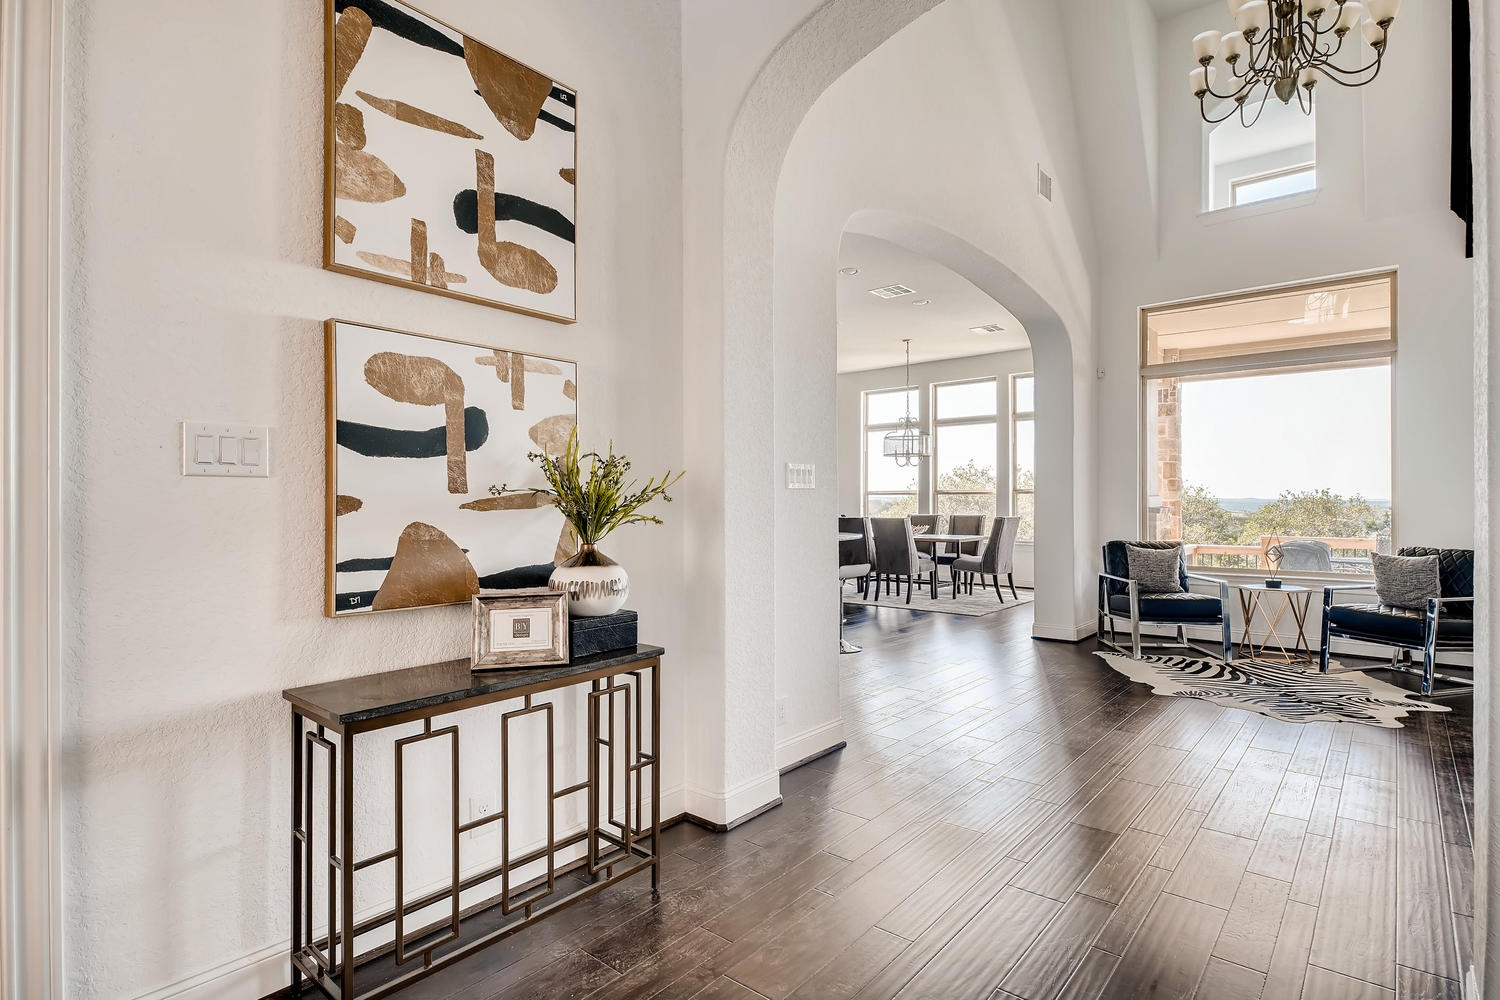 Home Staging and Design by Alejandra Canales in McAllen, Texas and Rio Grande Valley.